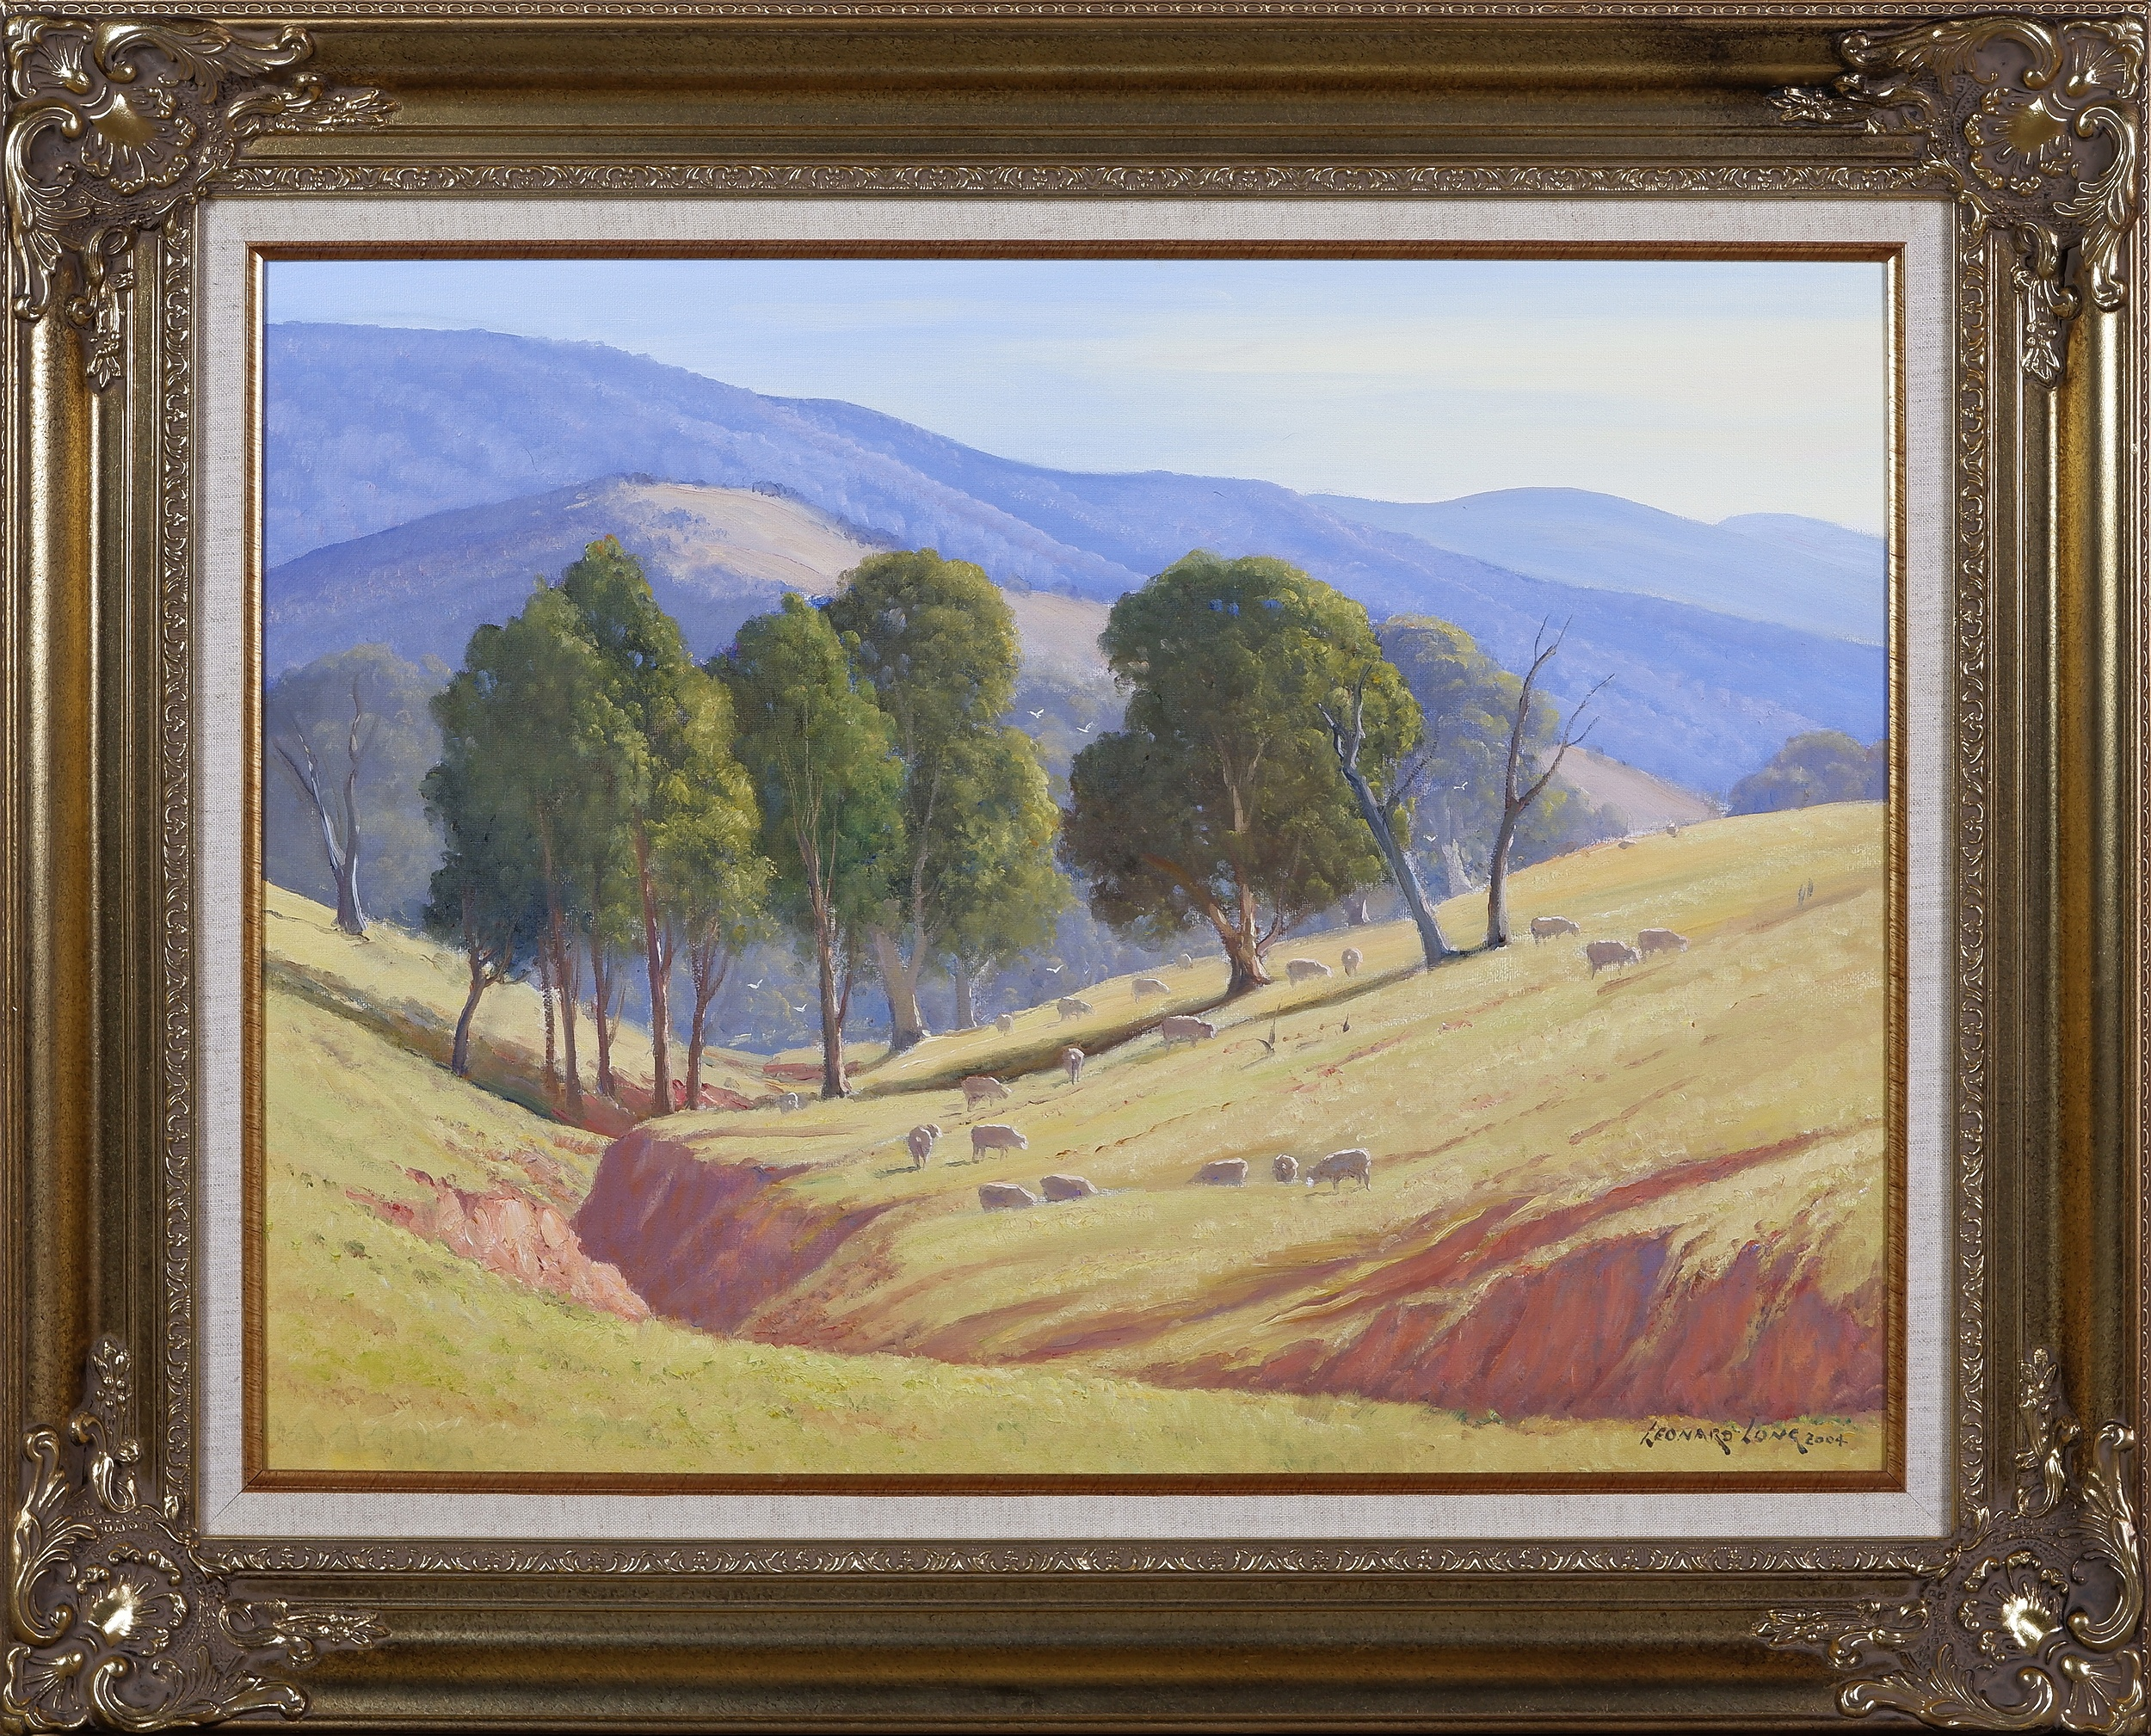 'Leonard Long (1911-1913), In the Hills At Cookmundoon, Wee Jasper, New South Wales 2004, Oil On Canvas on Board'